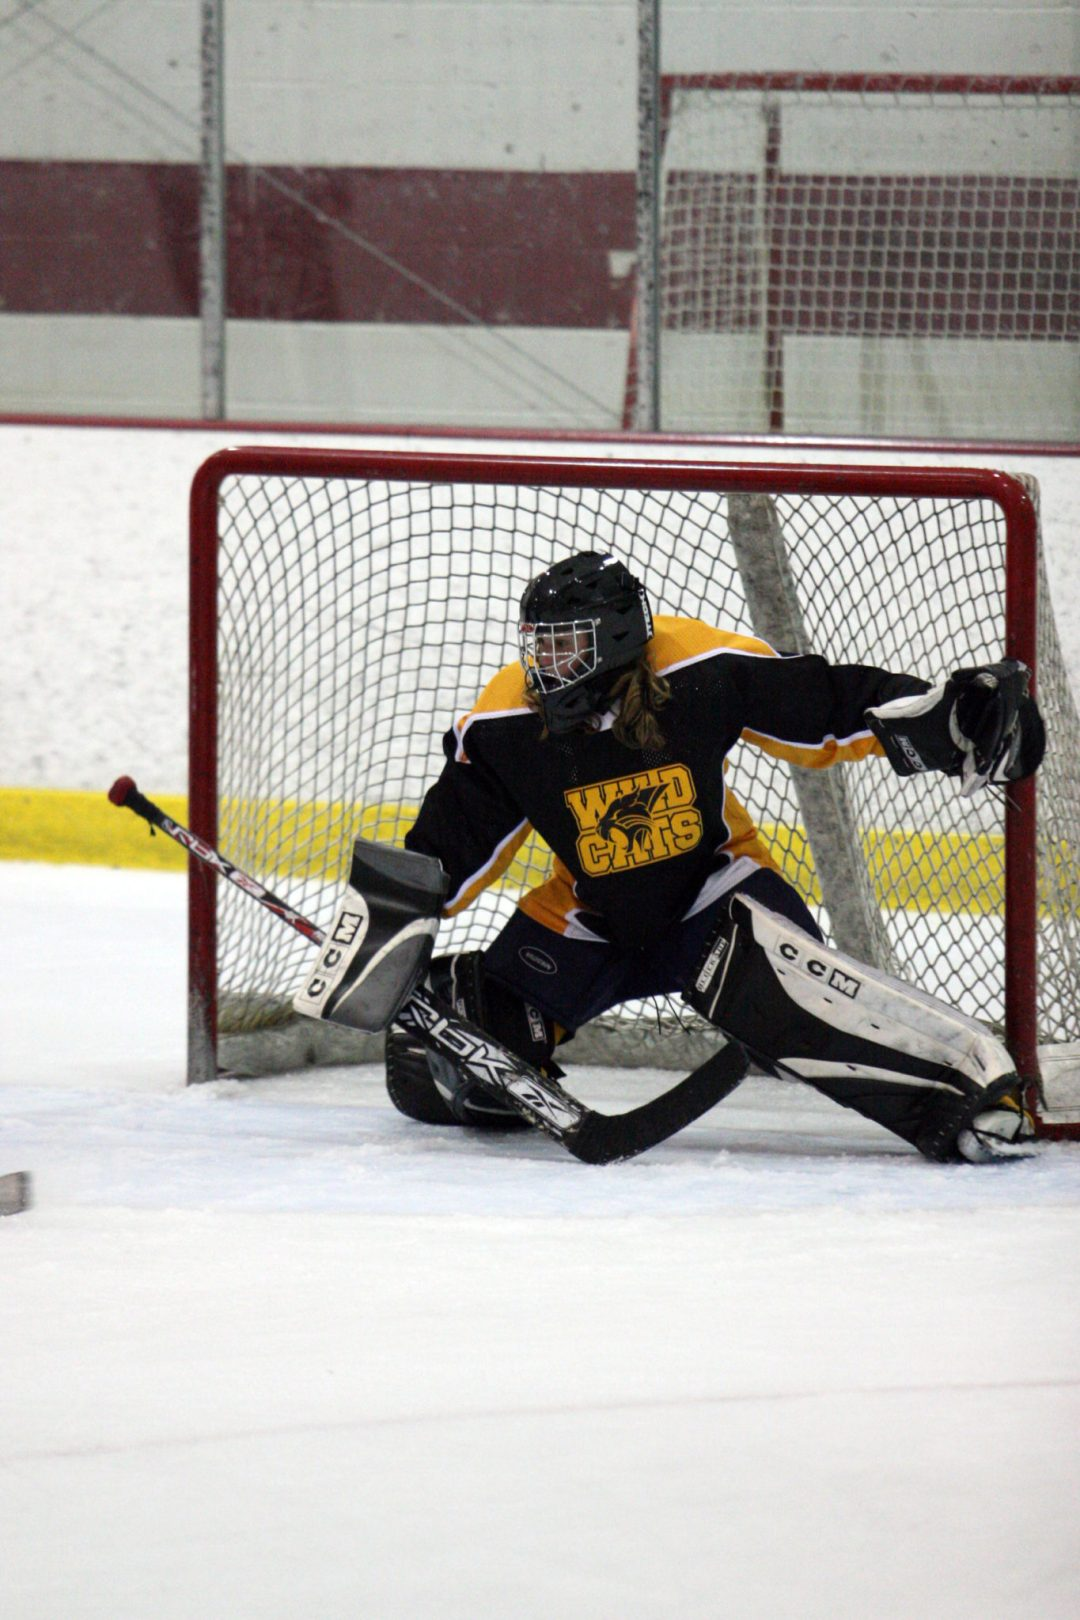 """Hockey at the National Sports Center. Image by <a href=""""http://www.nscsports.org/"""" target=""""_blank"""">National Sports Center</a>"""